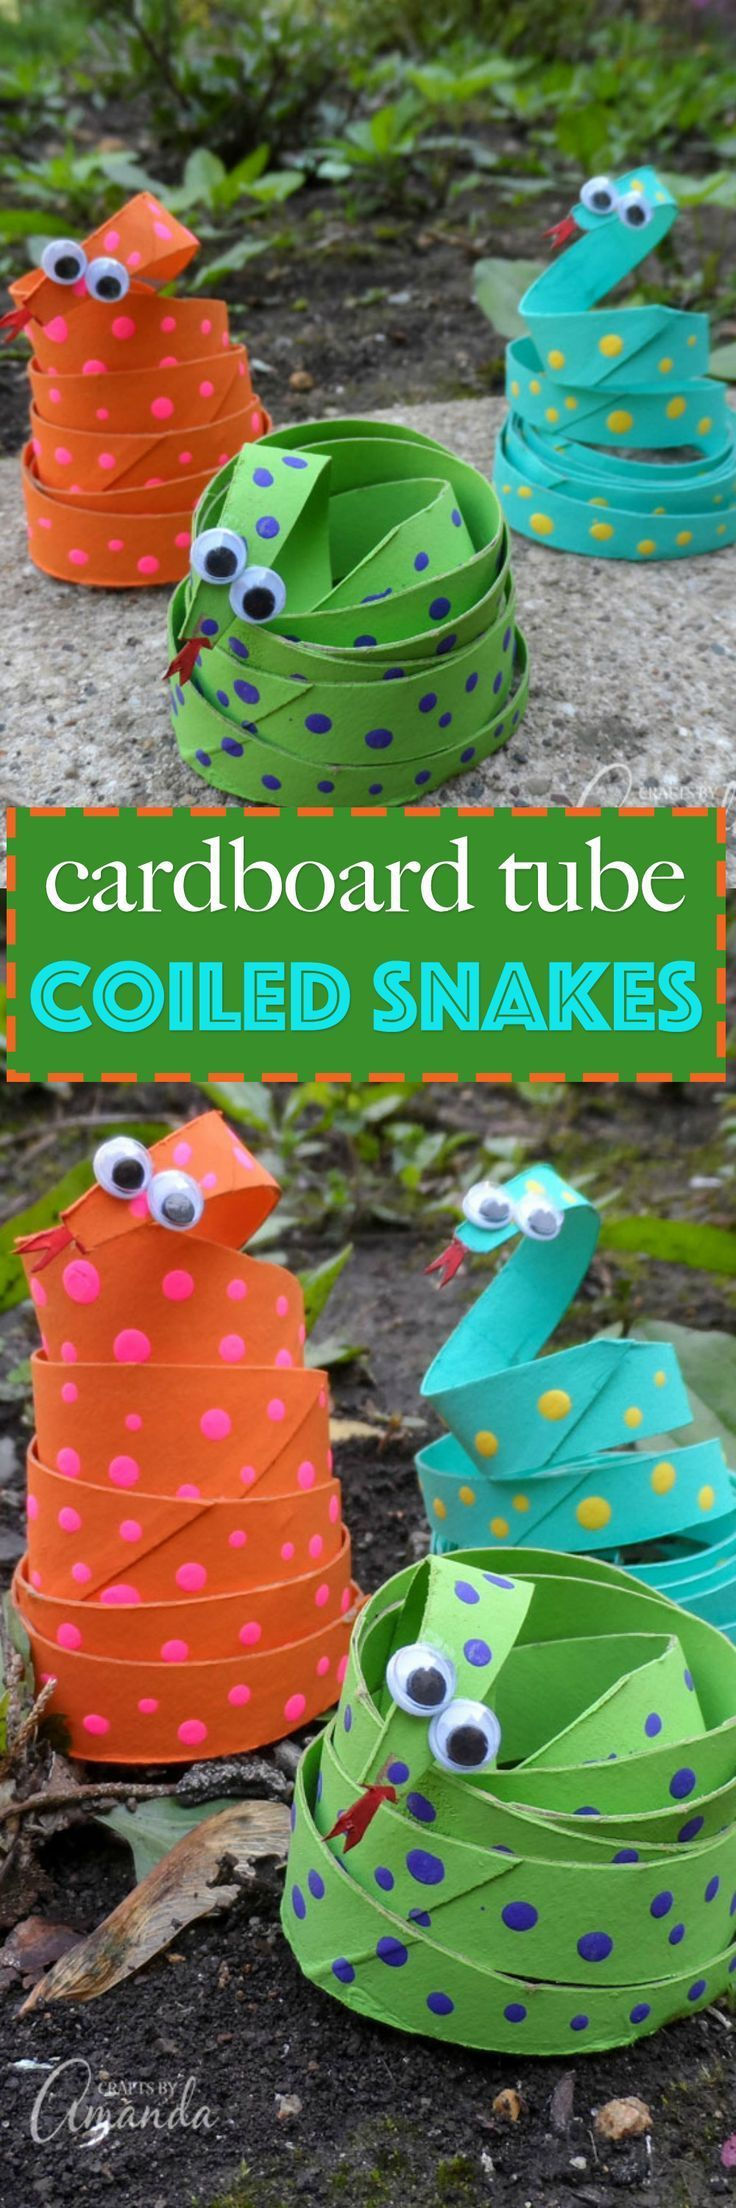 This cardboard tube coiled snakes craft is